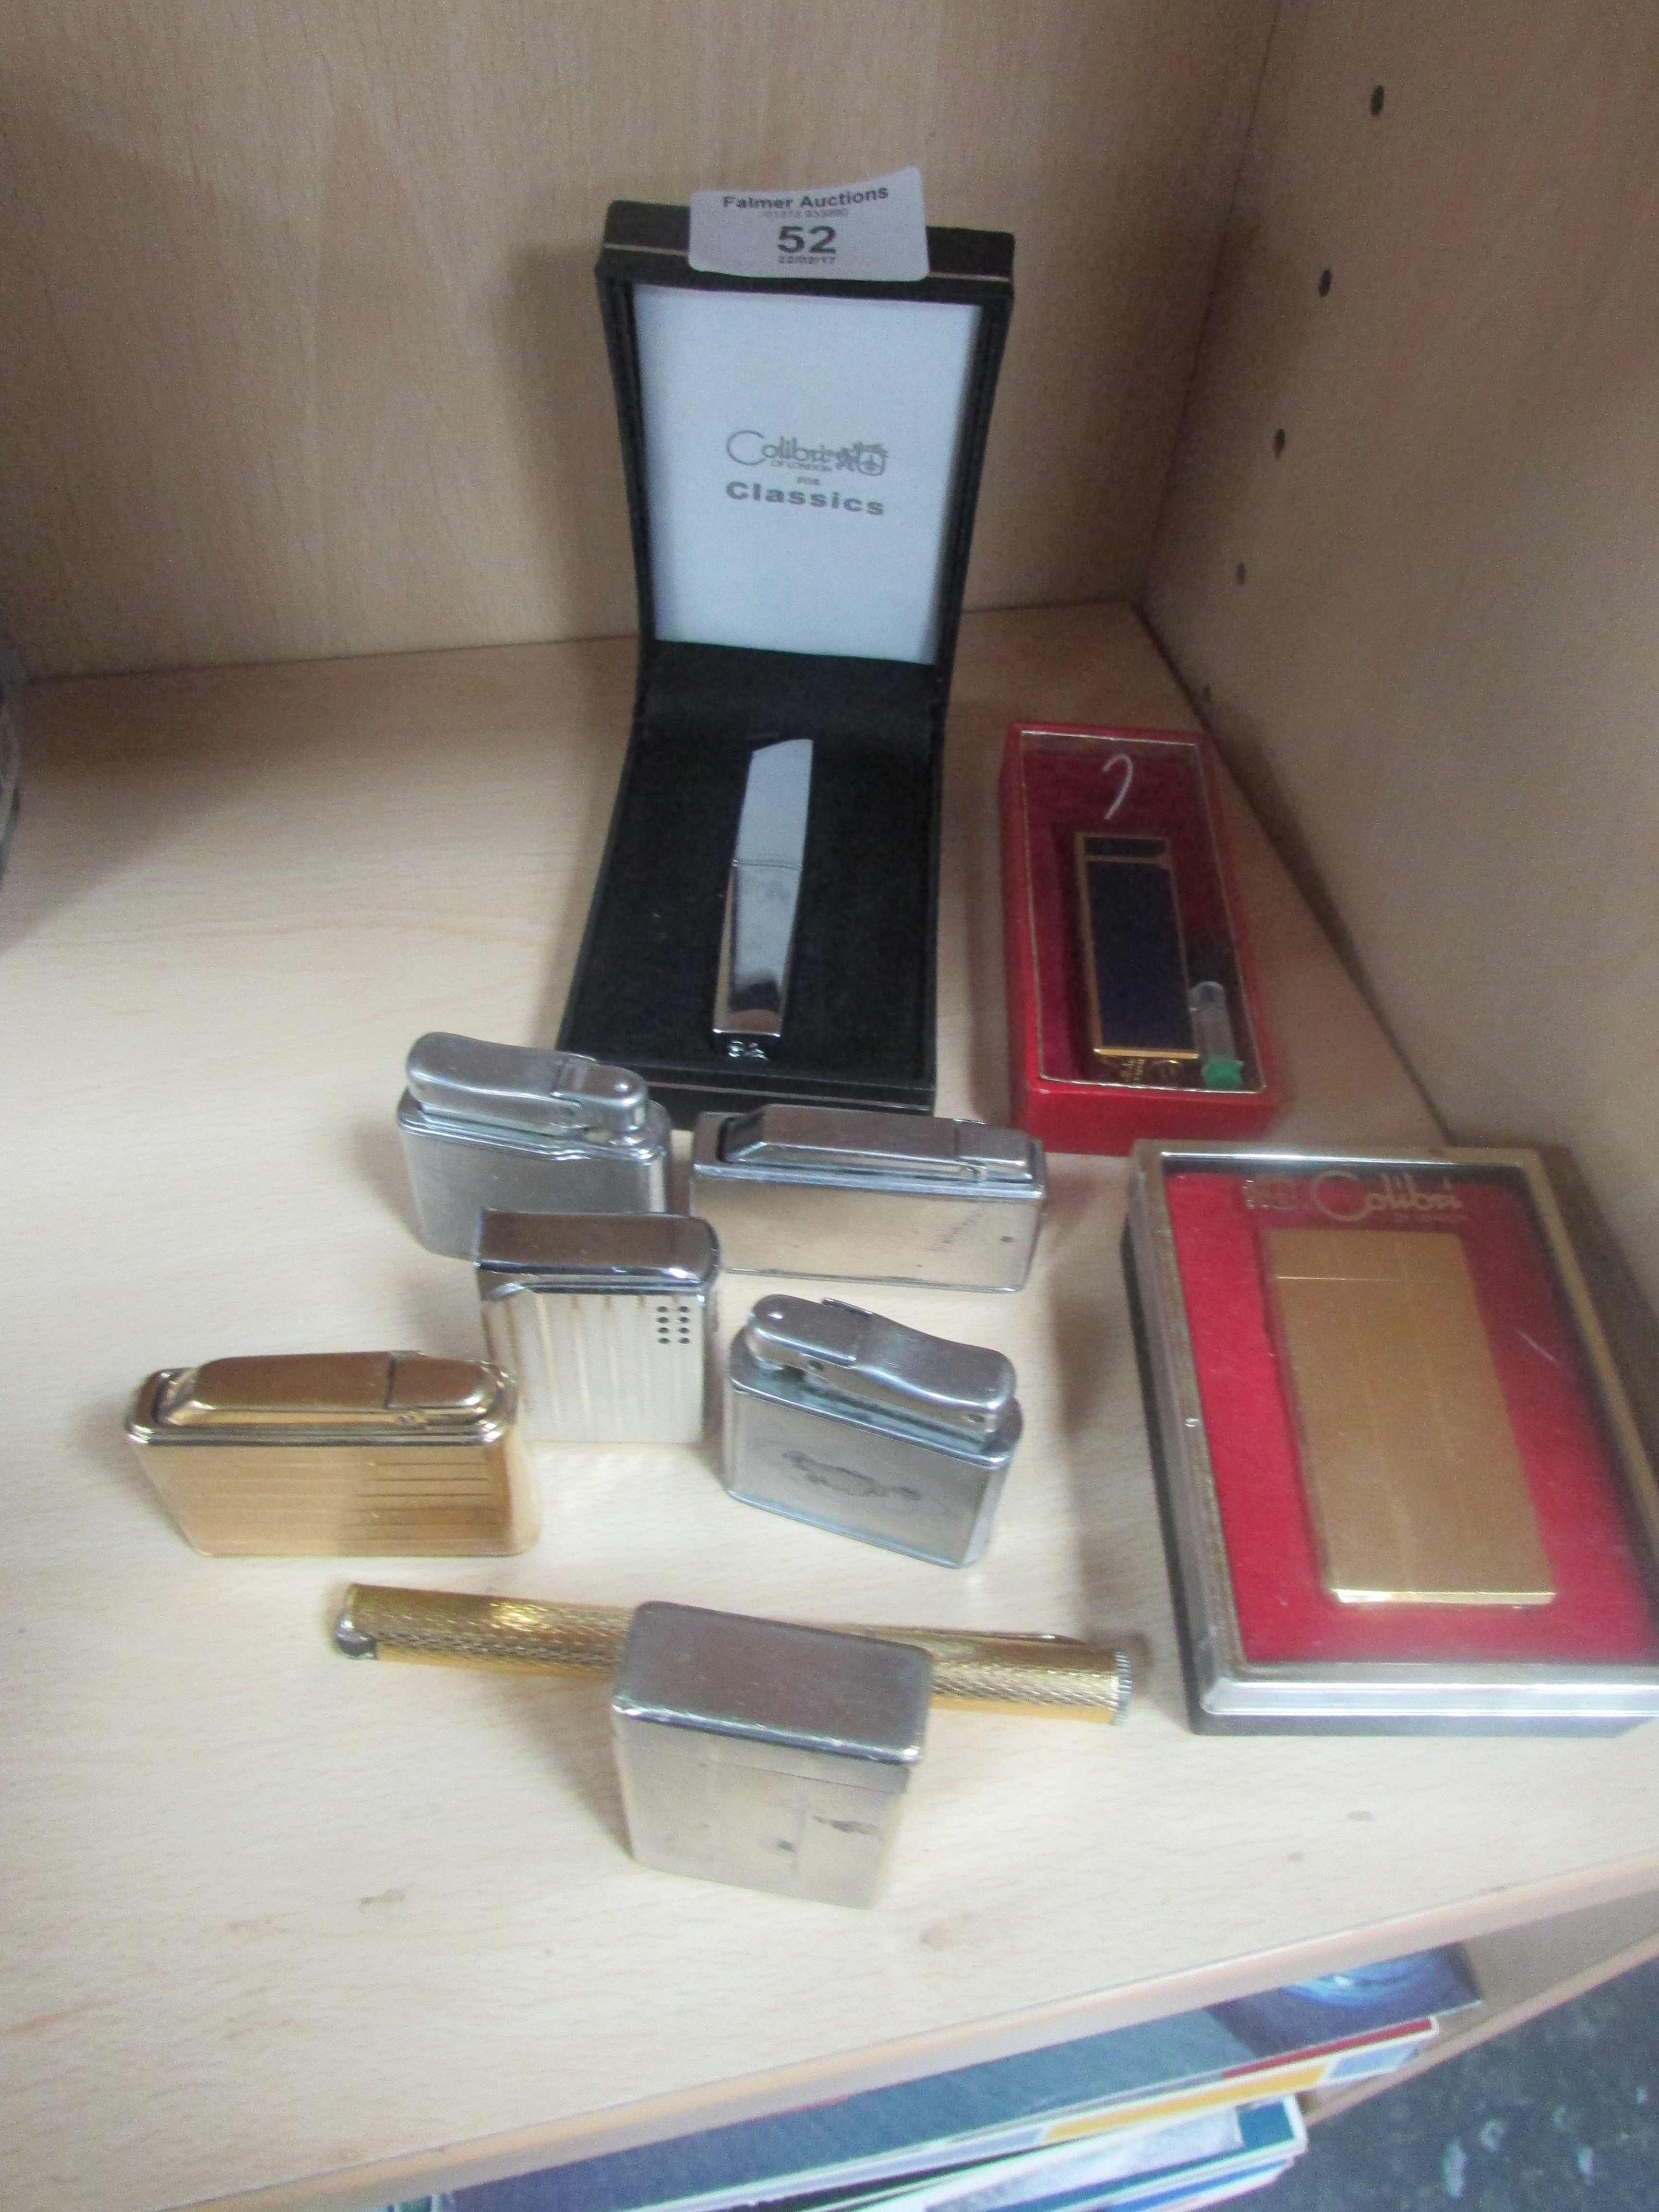 Lot 52 - 10 calibri lighters to include gold plated one + pen lighter